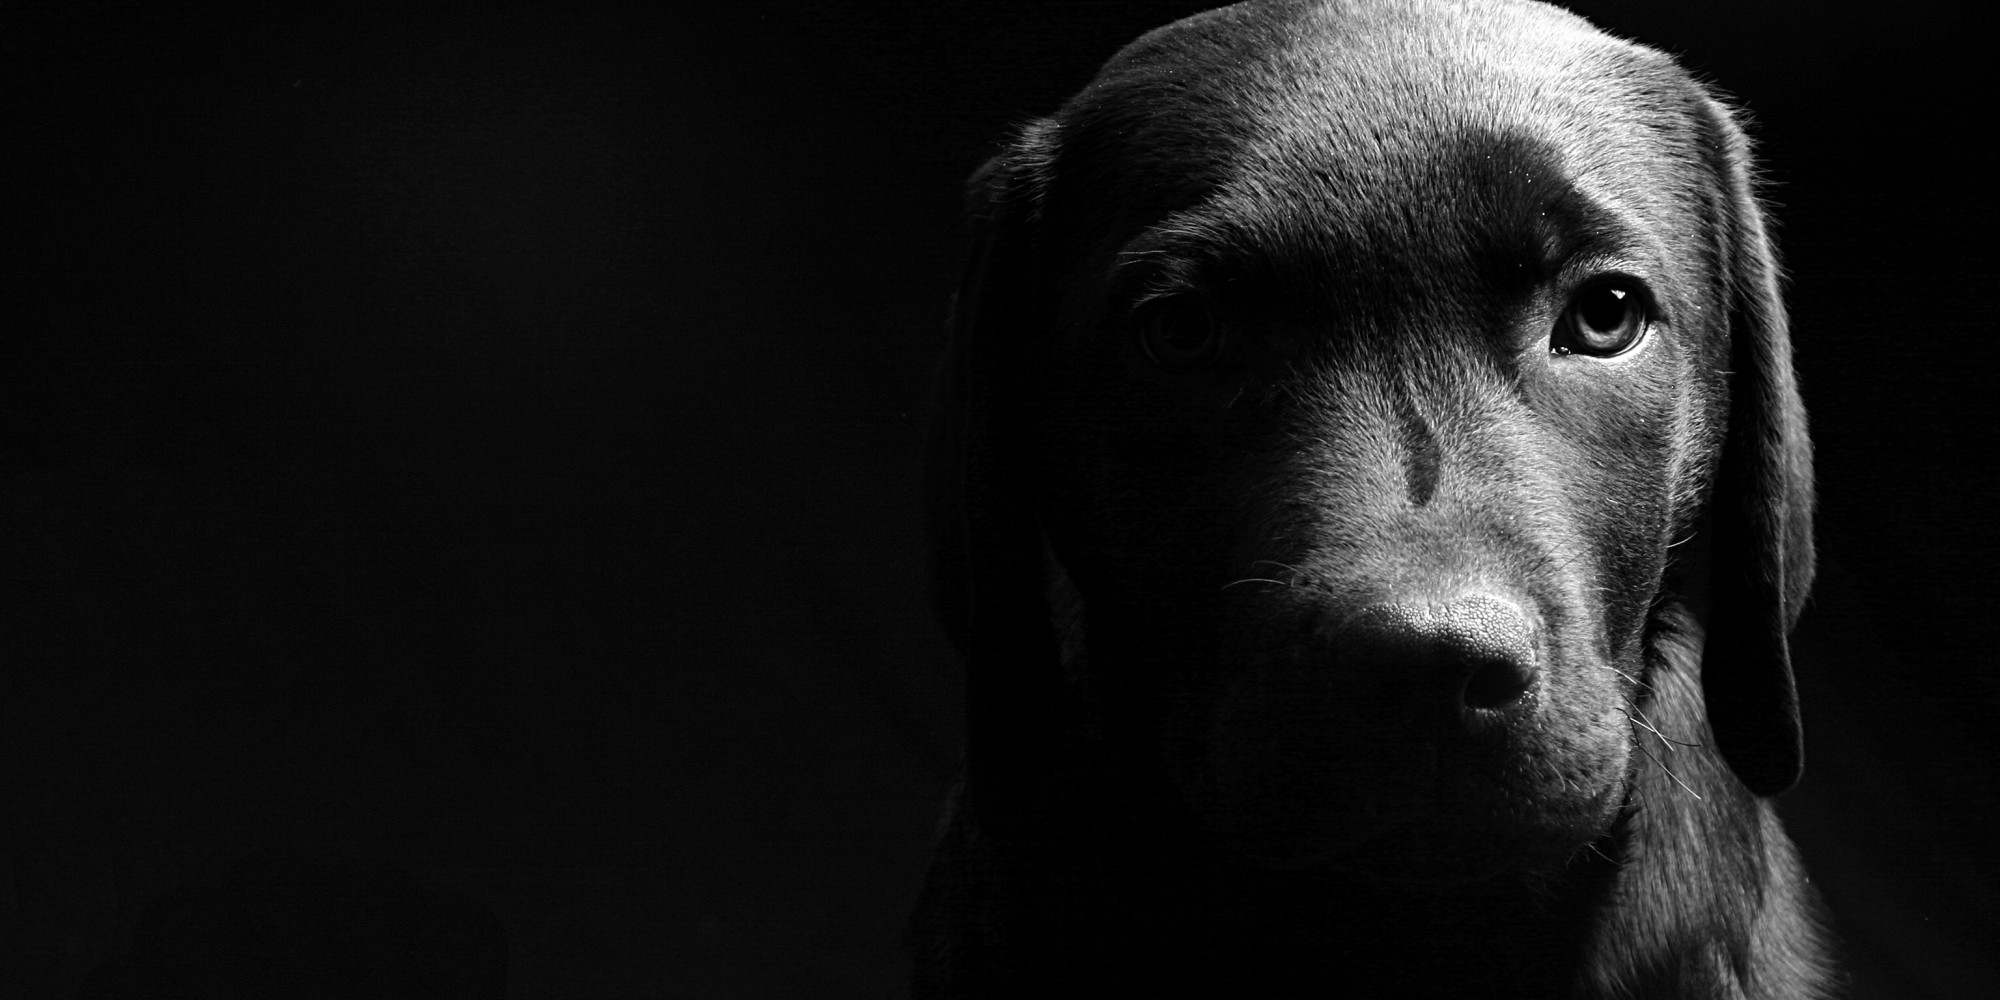 2000x1000 - Wallpaper Dogs Black and White 34